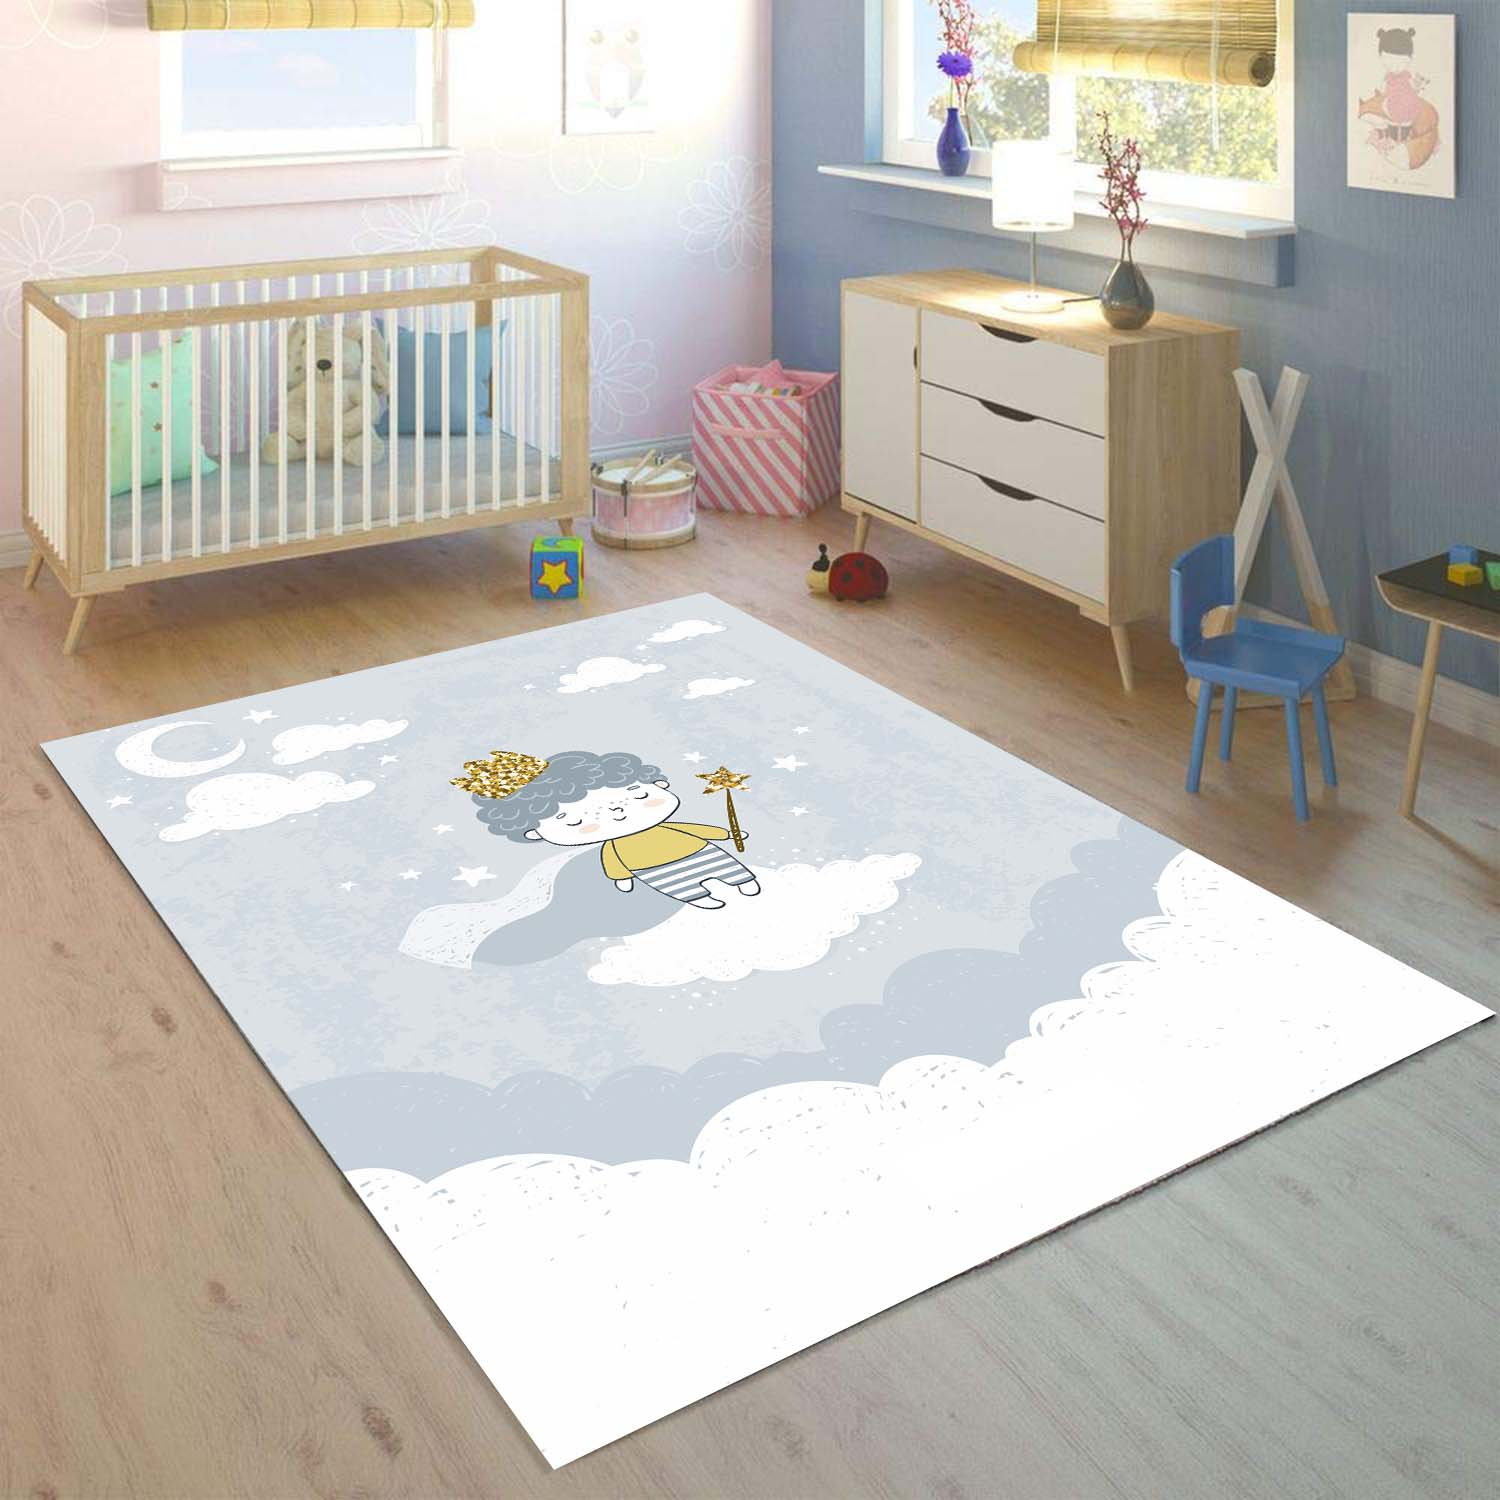 Else Little Prens On Gray White Clouds 3d Print Non Slip Microfiber Children Kids Room Decorative Area Rug Mat